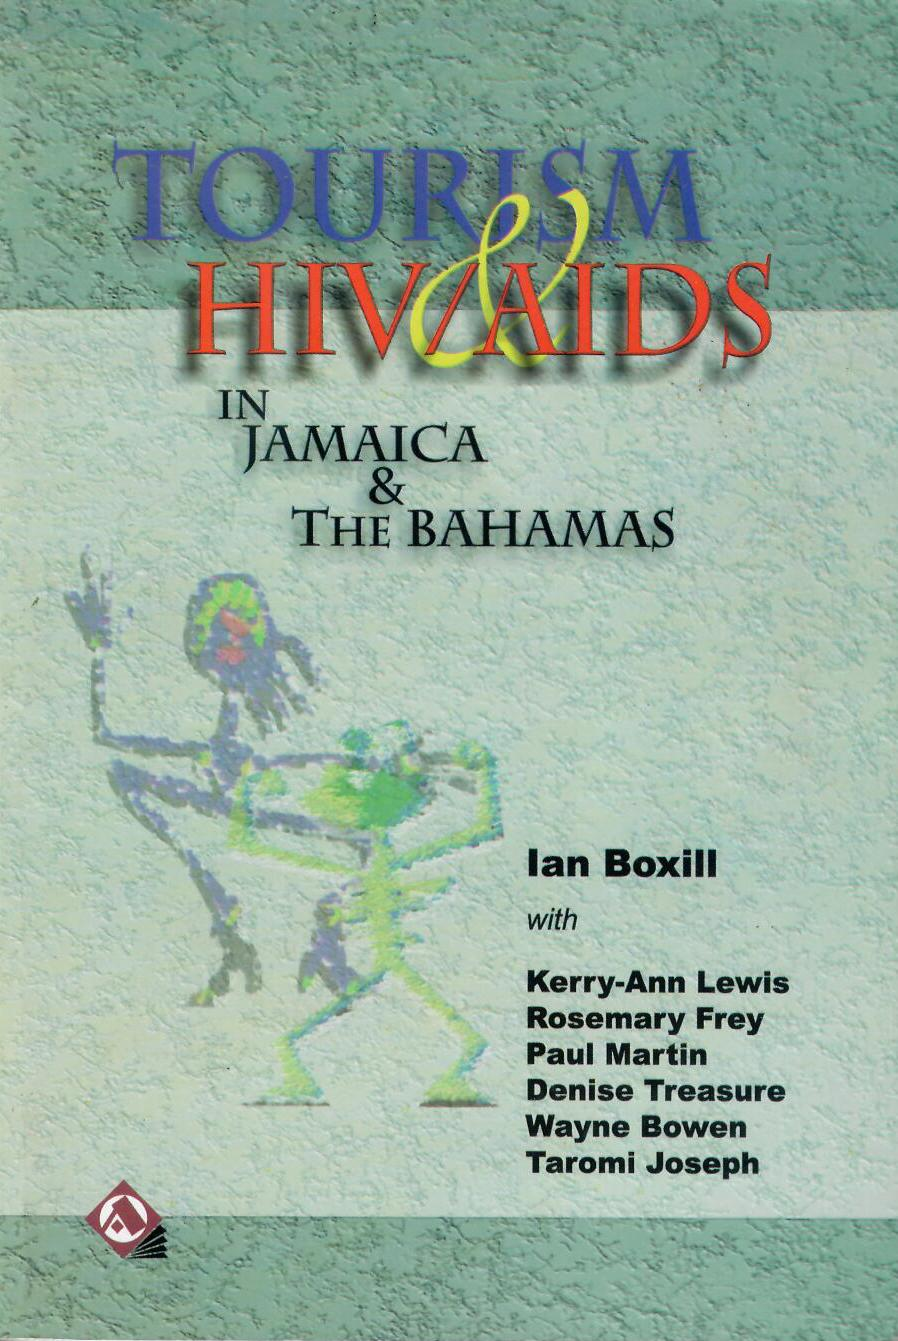 Tourism and HIV/AIDS in Jamaica and The Bahamas